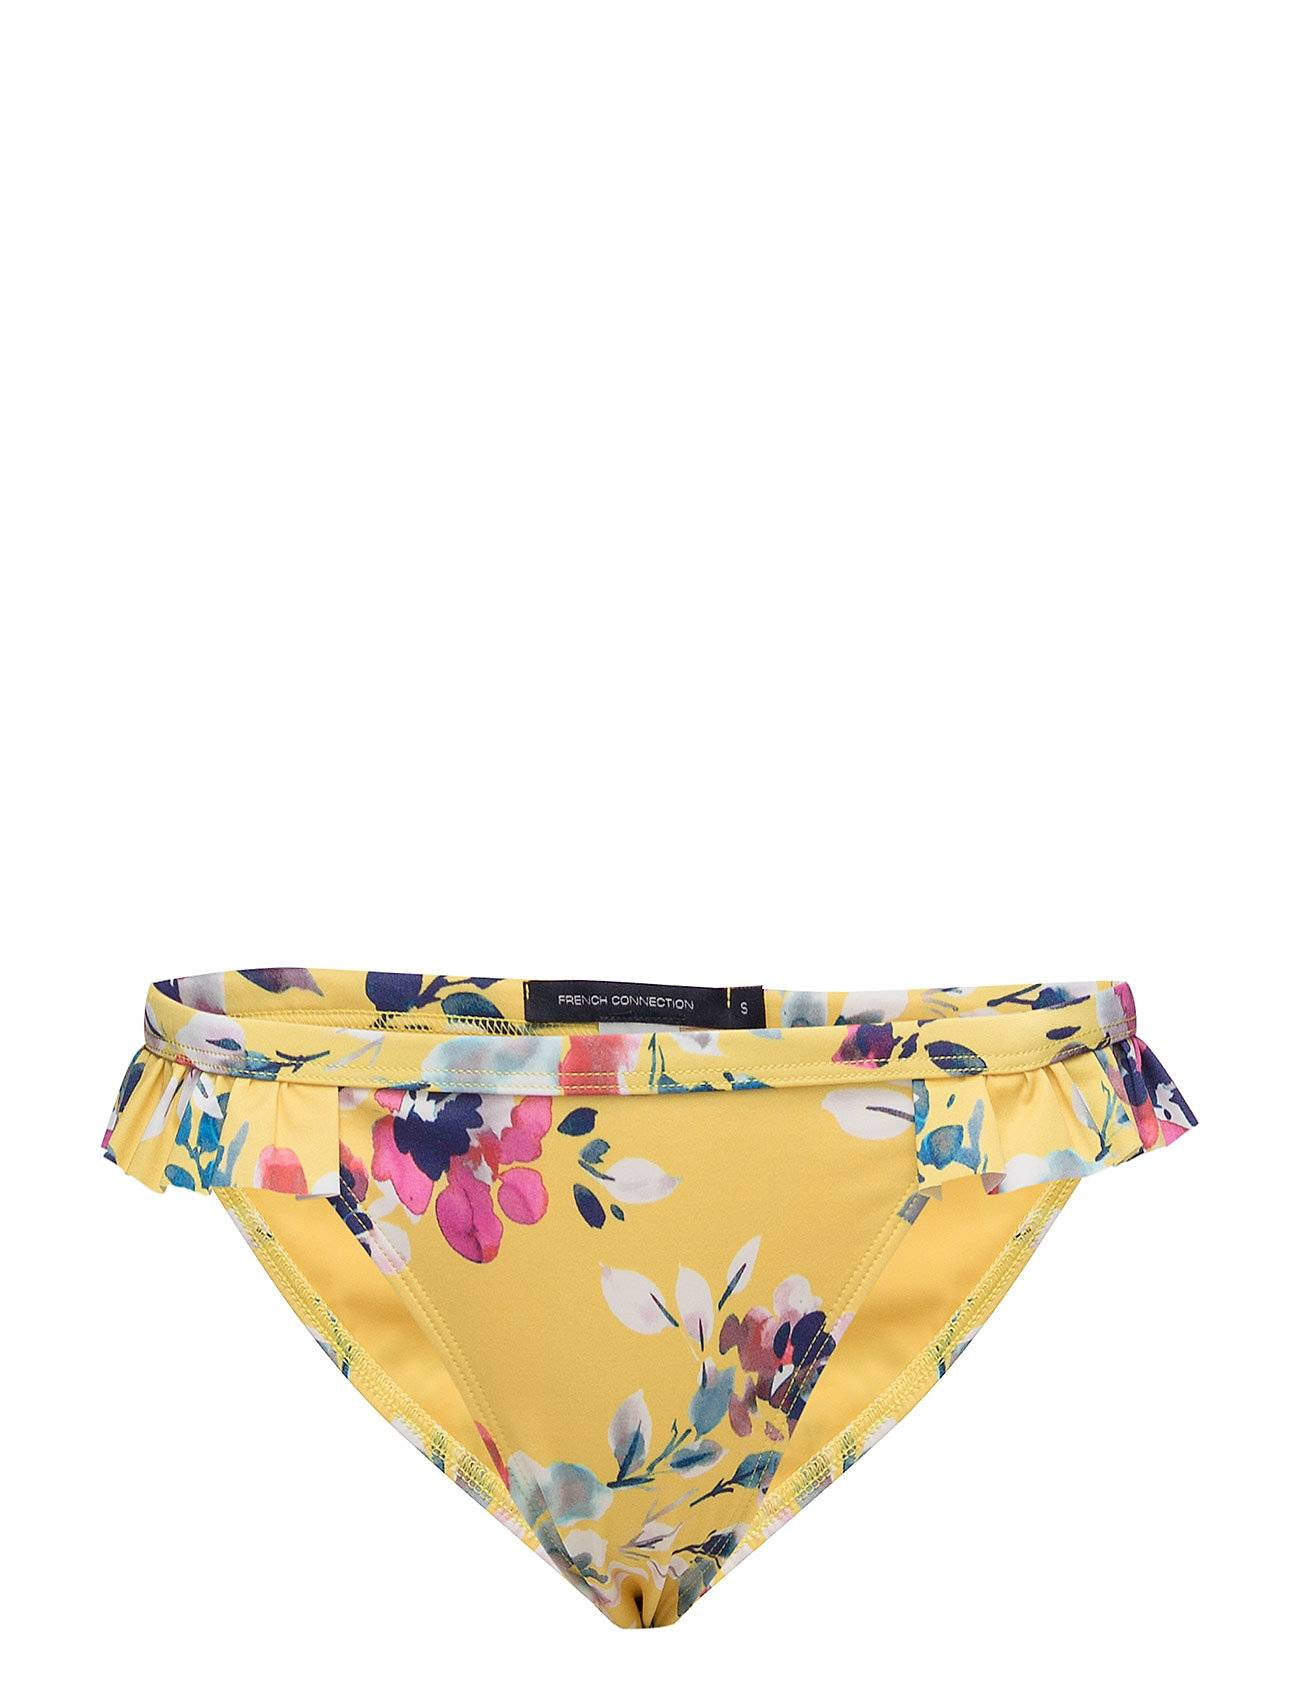 French Connection Linosa Frill Briefs